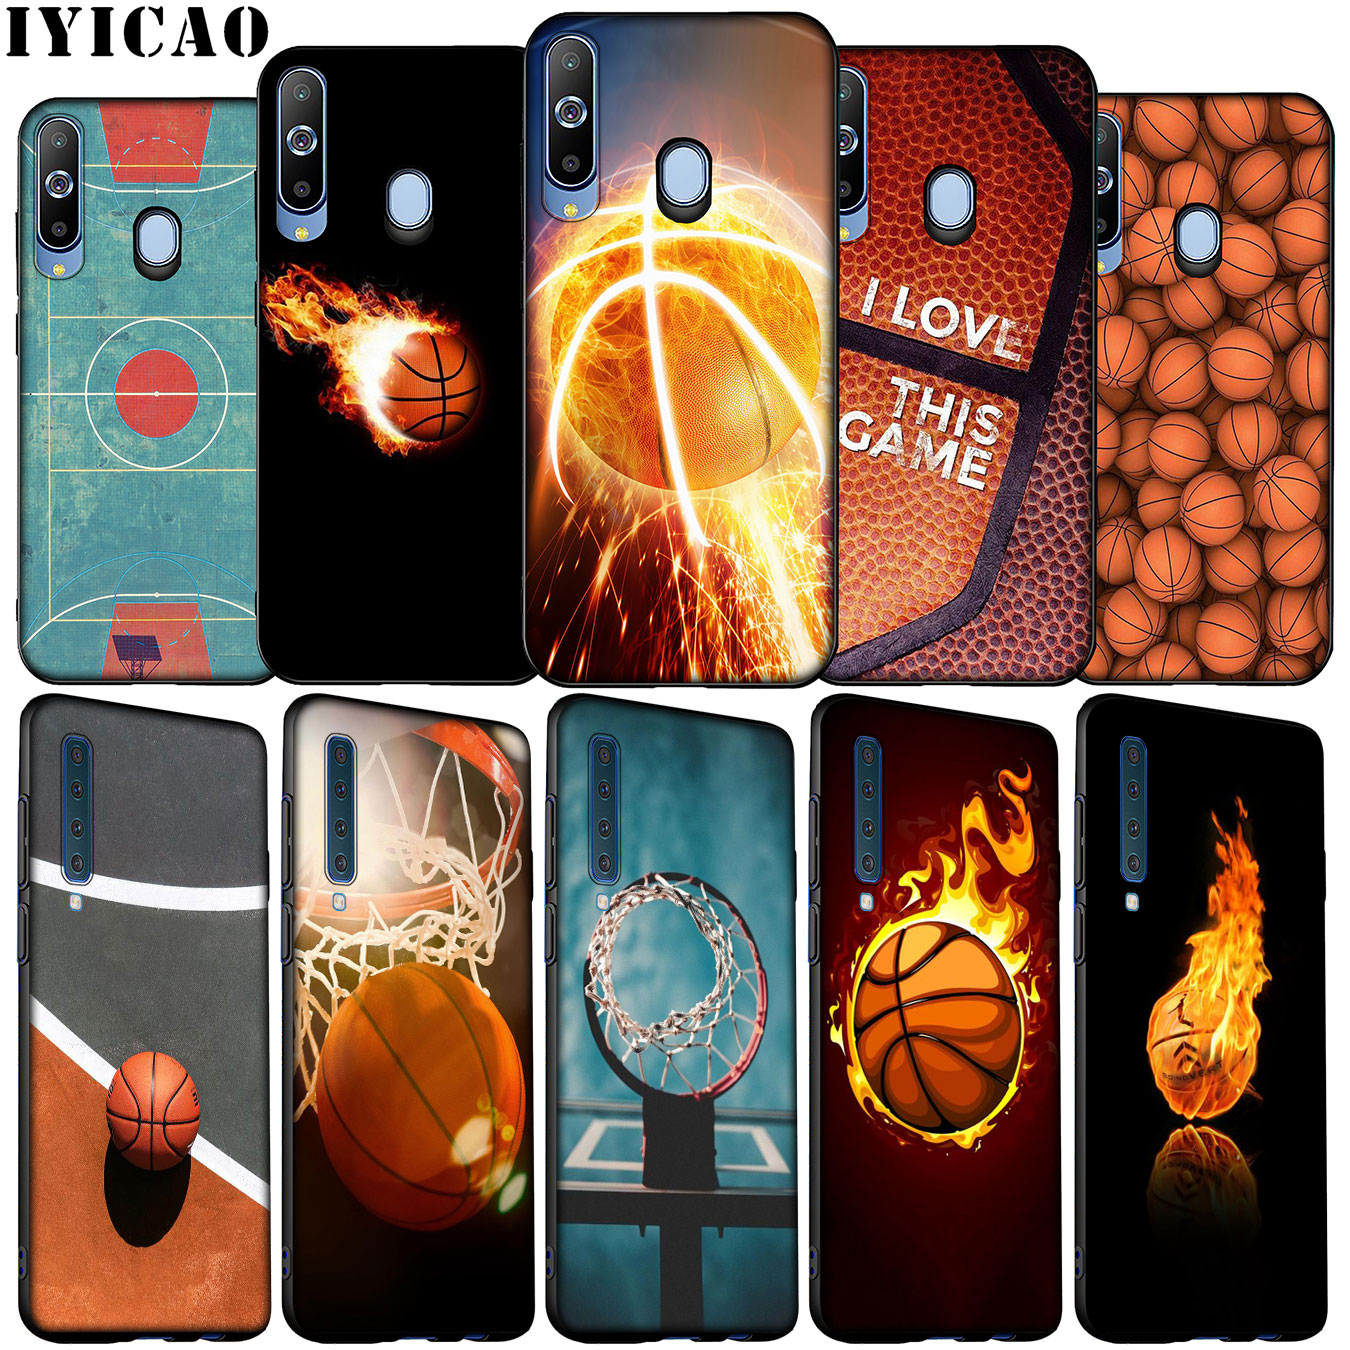 IYICAO Basketball Art Shoot Soft Silicone Case for Samsung Galaxy A70 A50 A60 A40 A30 A20 A10 M10 M20 M30 M40 A20E Black Cover image